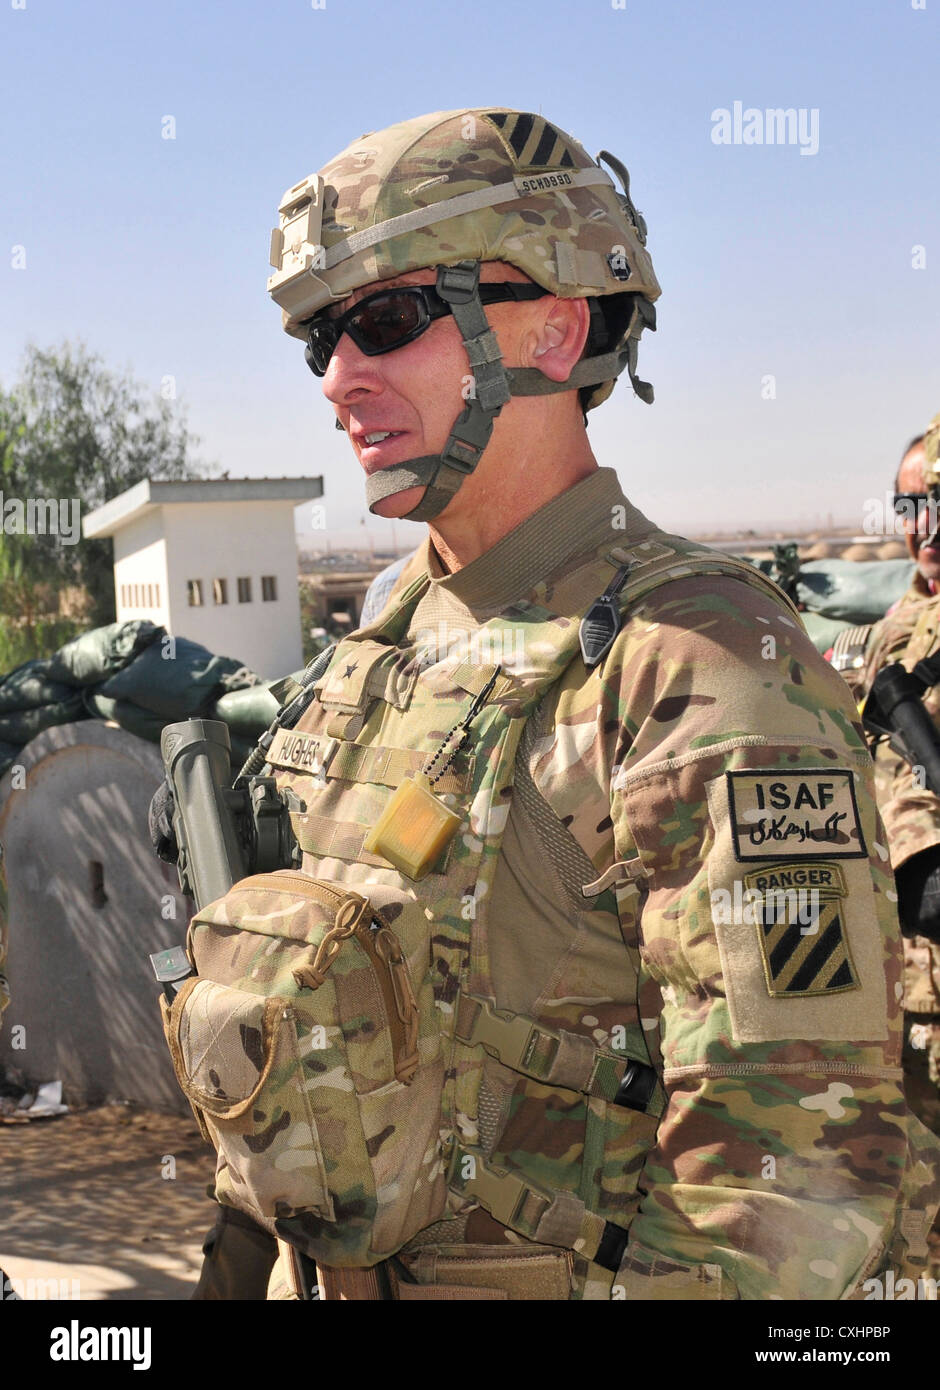 Brig. Gen. Chris Hughes appears during a battlefield circulation of the border crossing point along the international - Stock Image